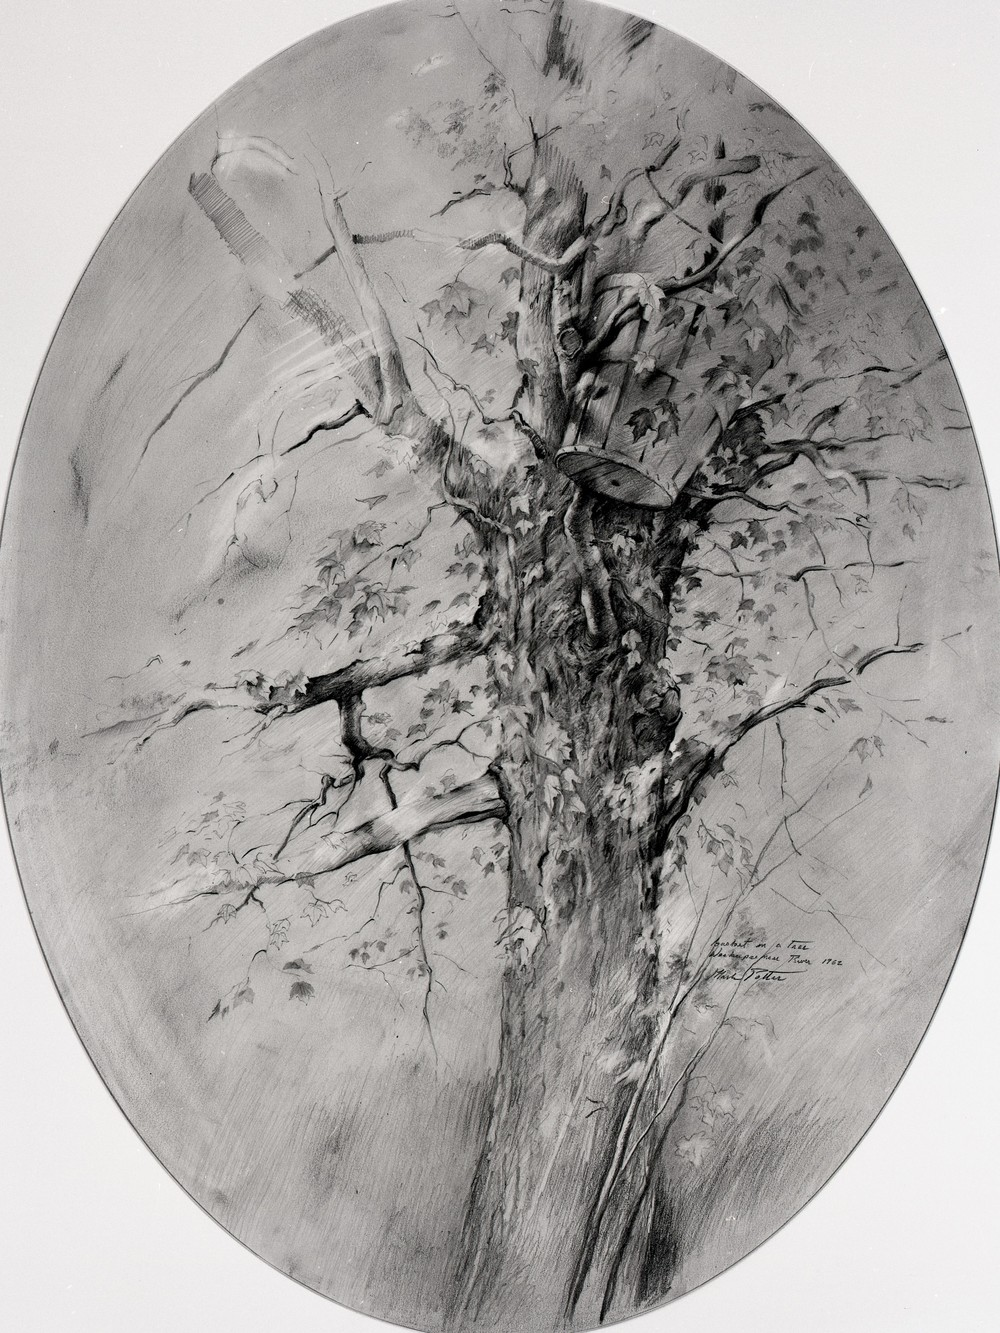 Basket in a Tree - Weekeepeemee River.      1962, pencil on paper. 23.5 x 17.6 inches. Private Collection.